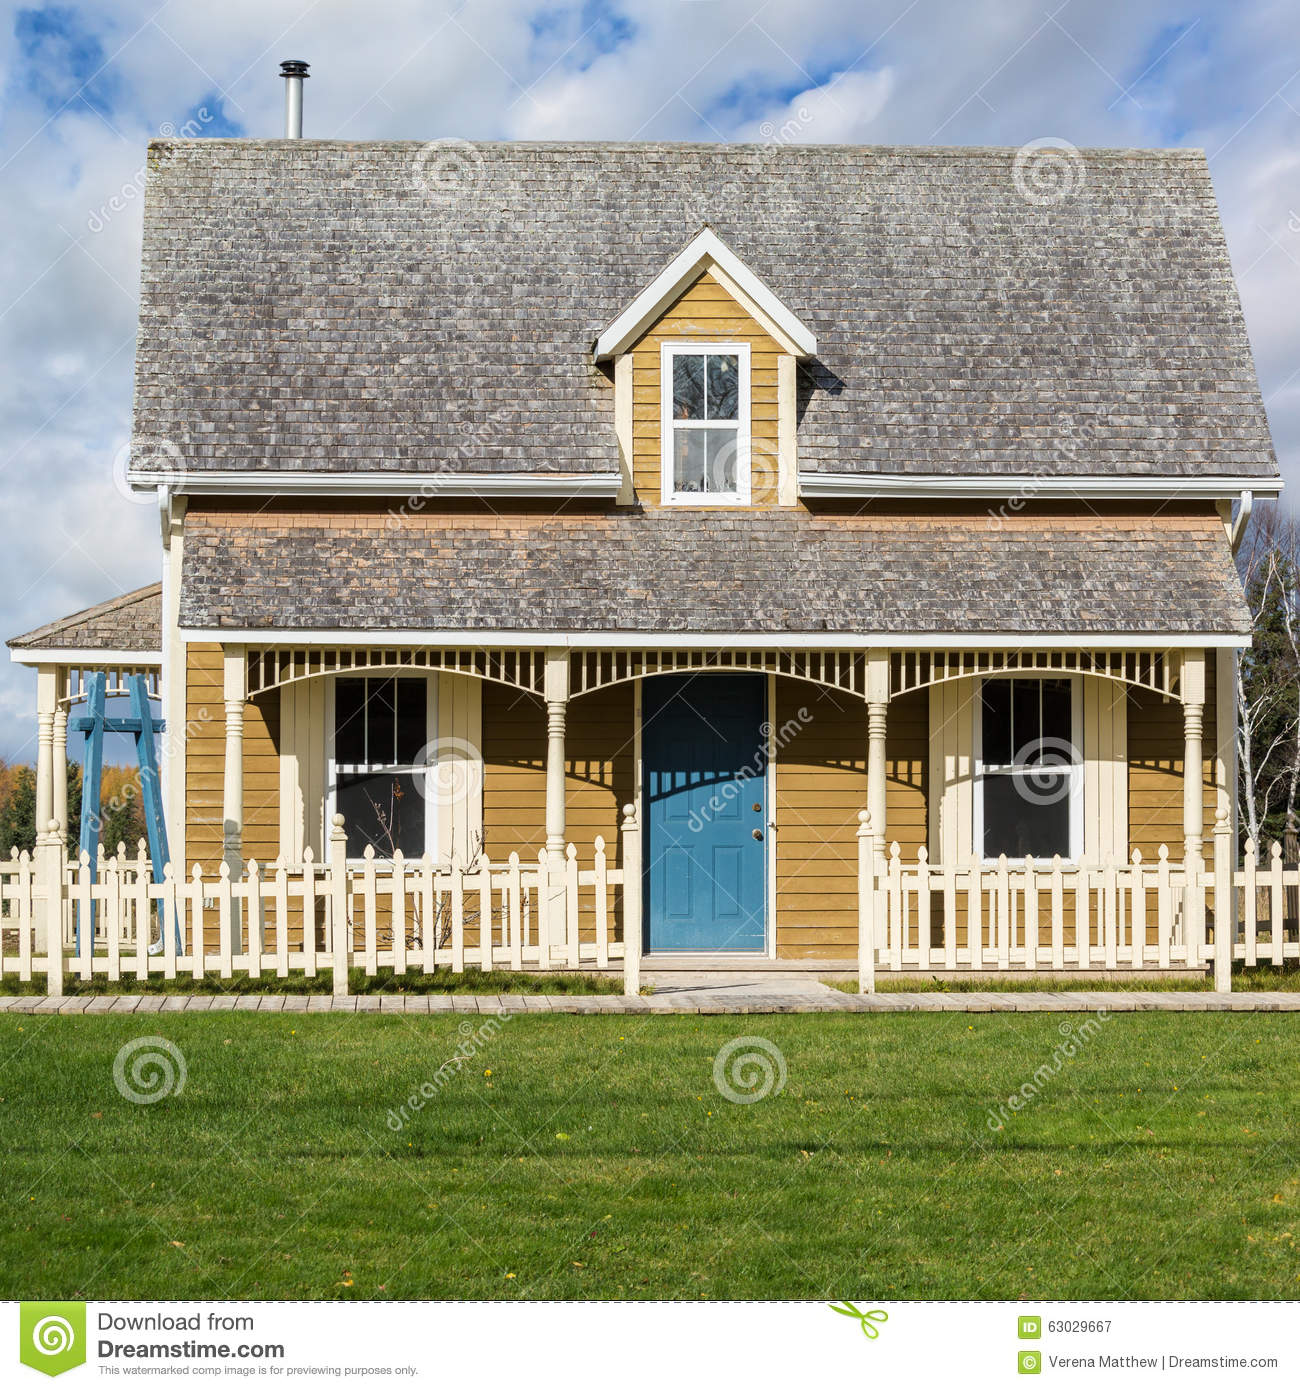 Tiny House Stock Photo Image 63029667